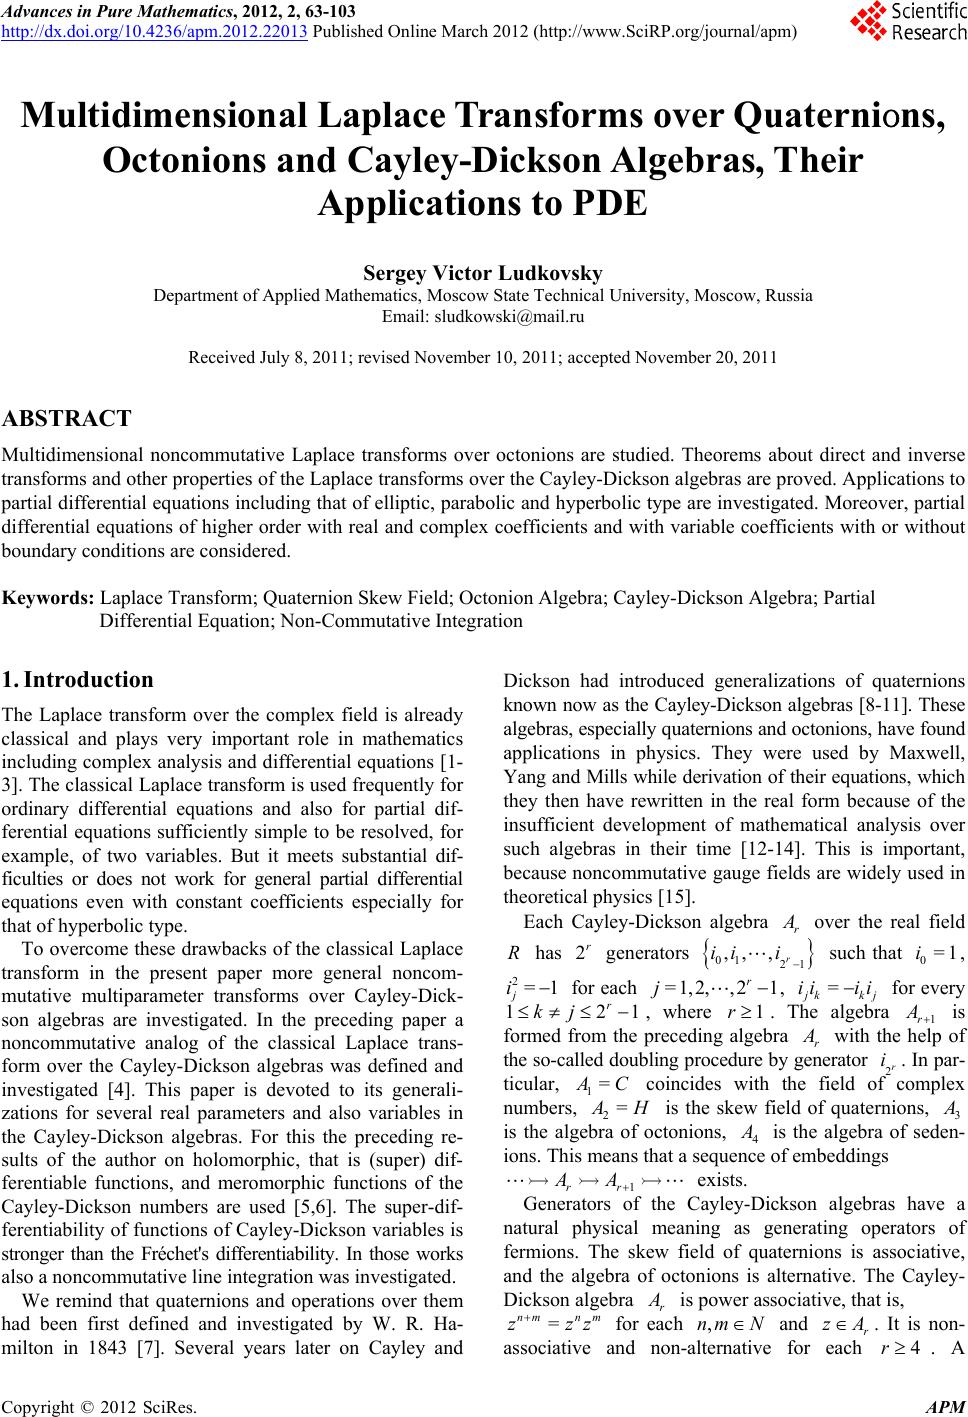 Multidimensional Laplace Transforms over Quaternions, Octonions ...